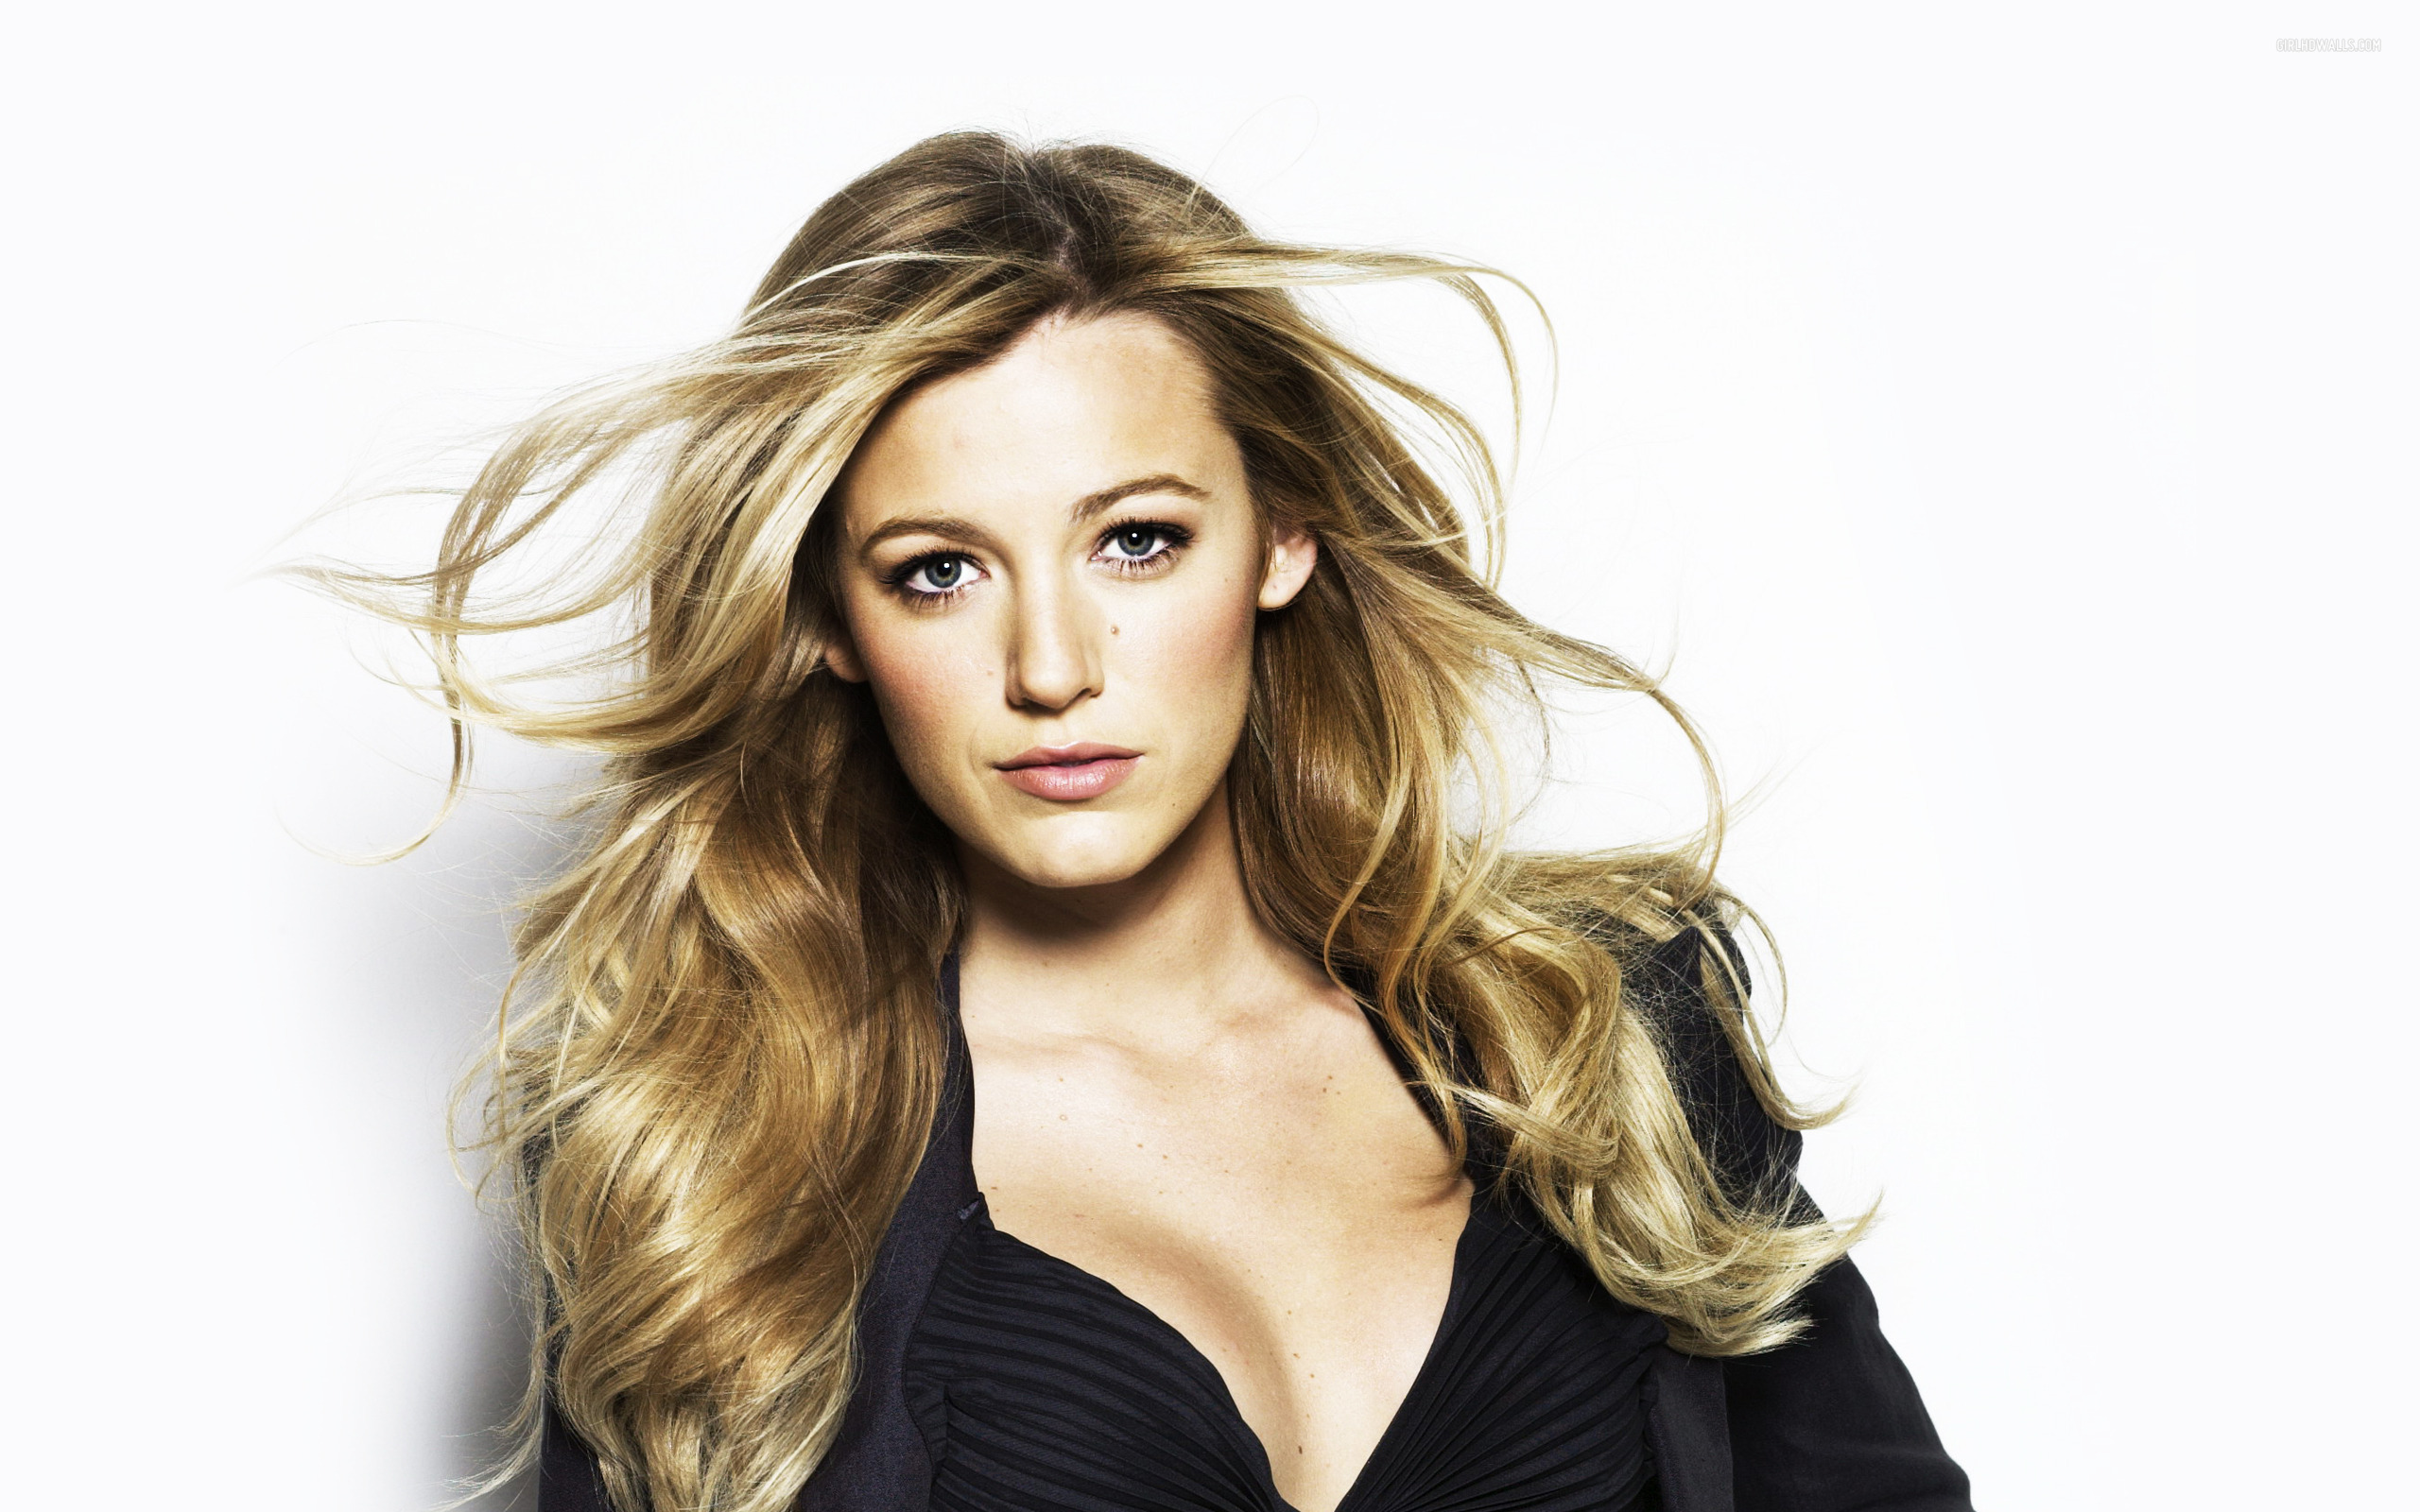 2560x1600 - Blake Lively Wallpapers 9